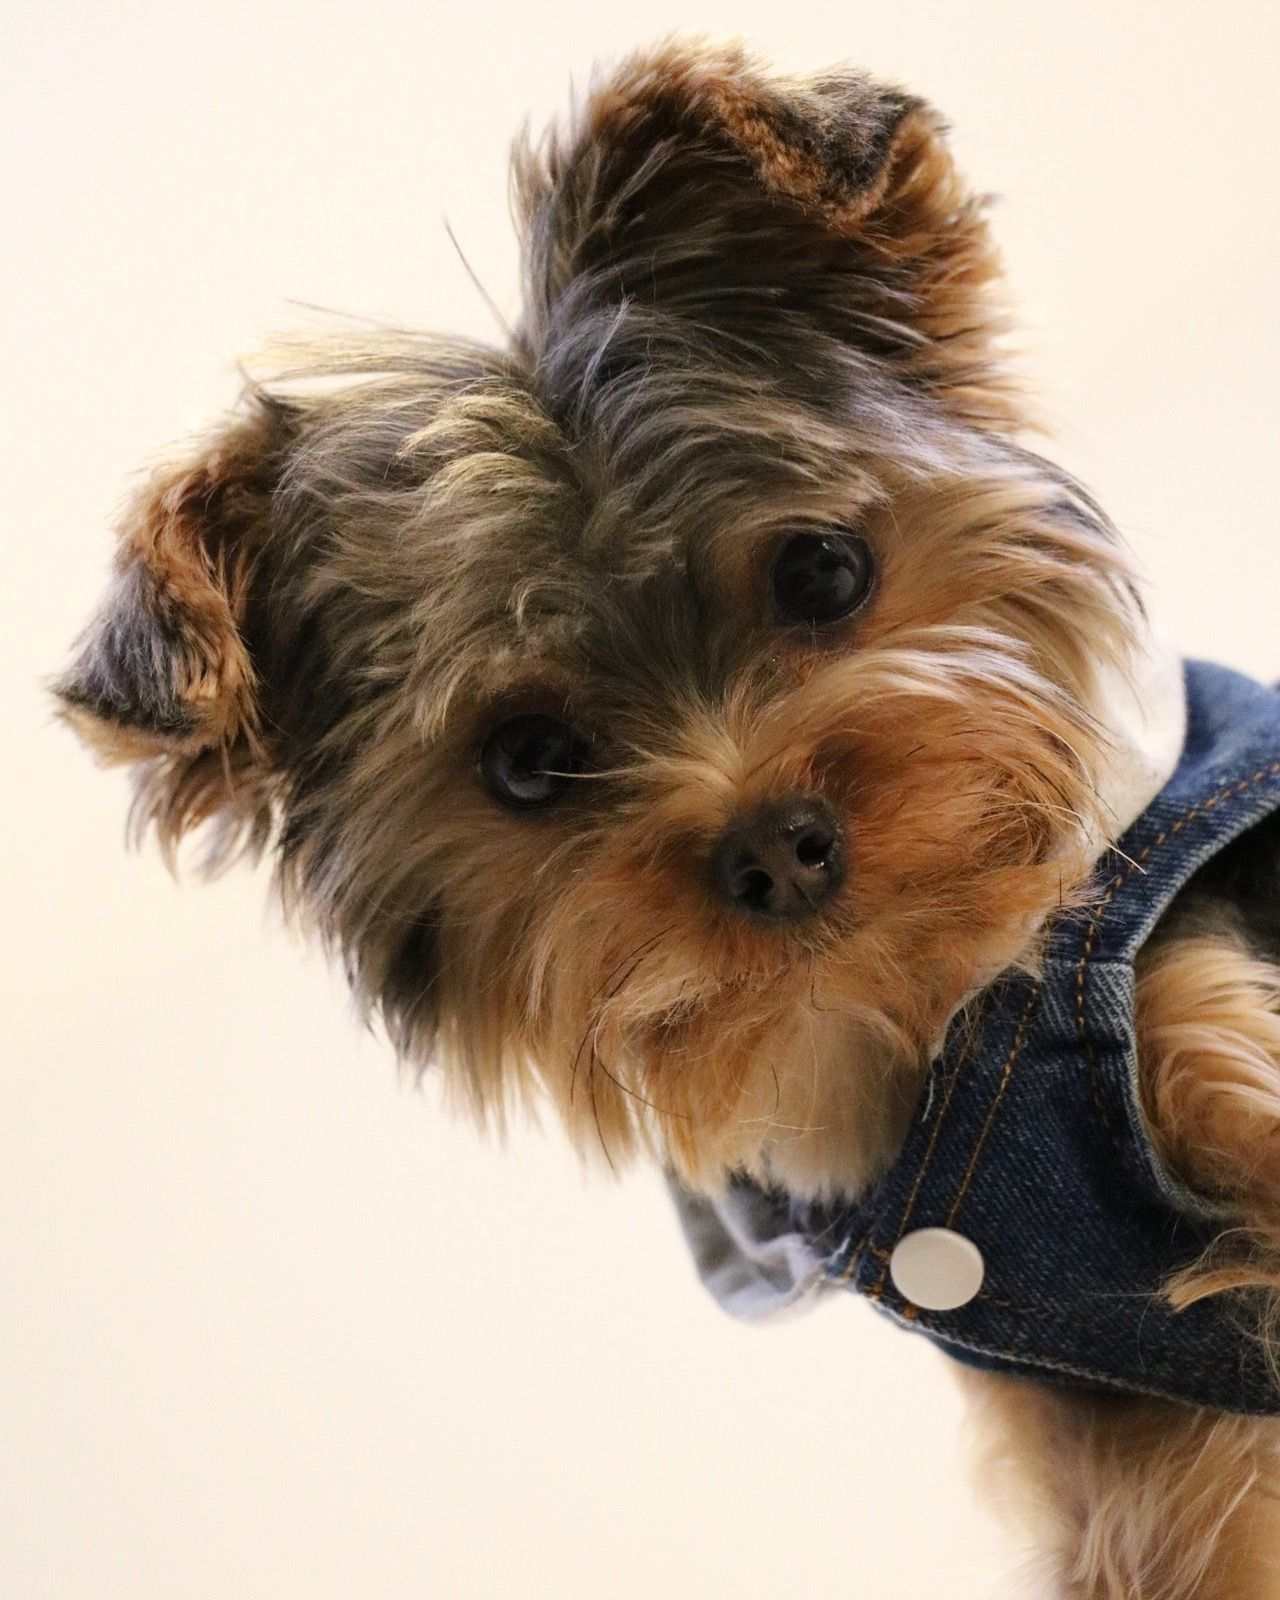 Little Yorkshire Terrier Posing An Grass Yorkie Dog Yorkshireterrier Yorkshire Terrier Yorkie Dogs Yorkshire Terrier Puppies